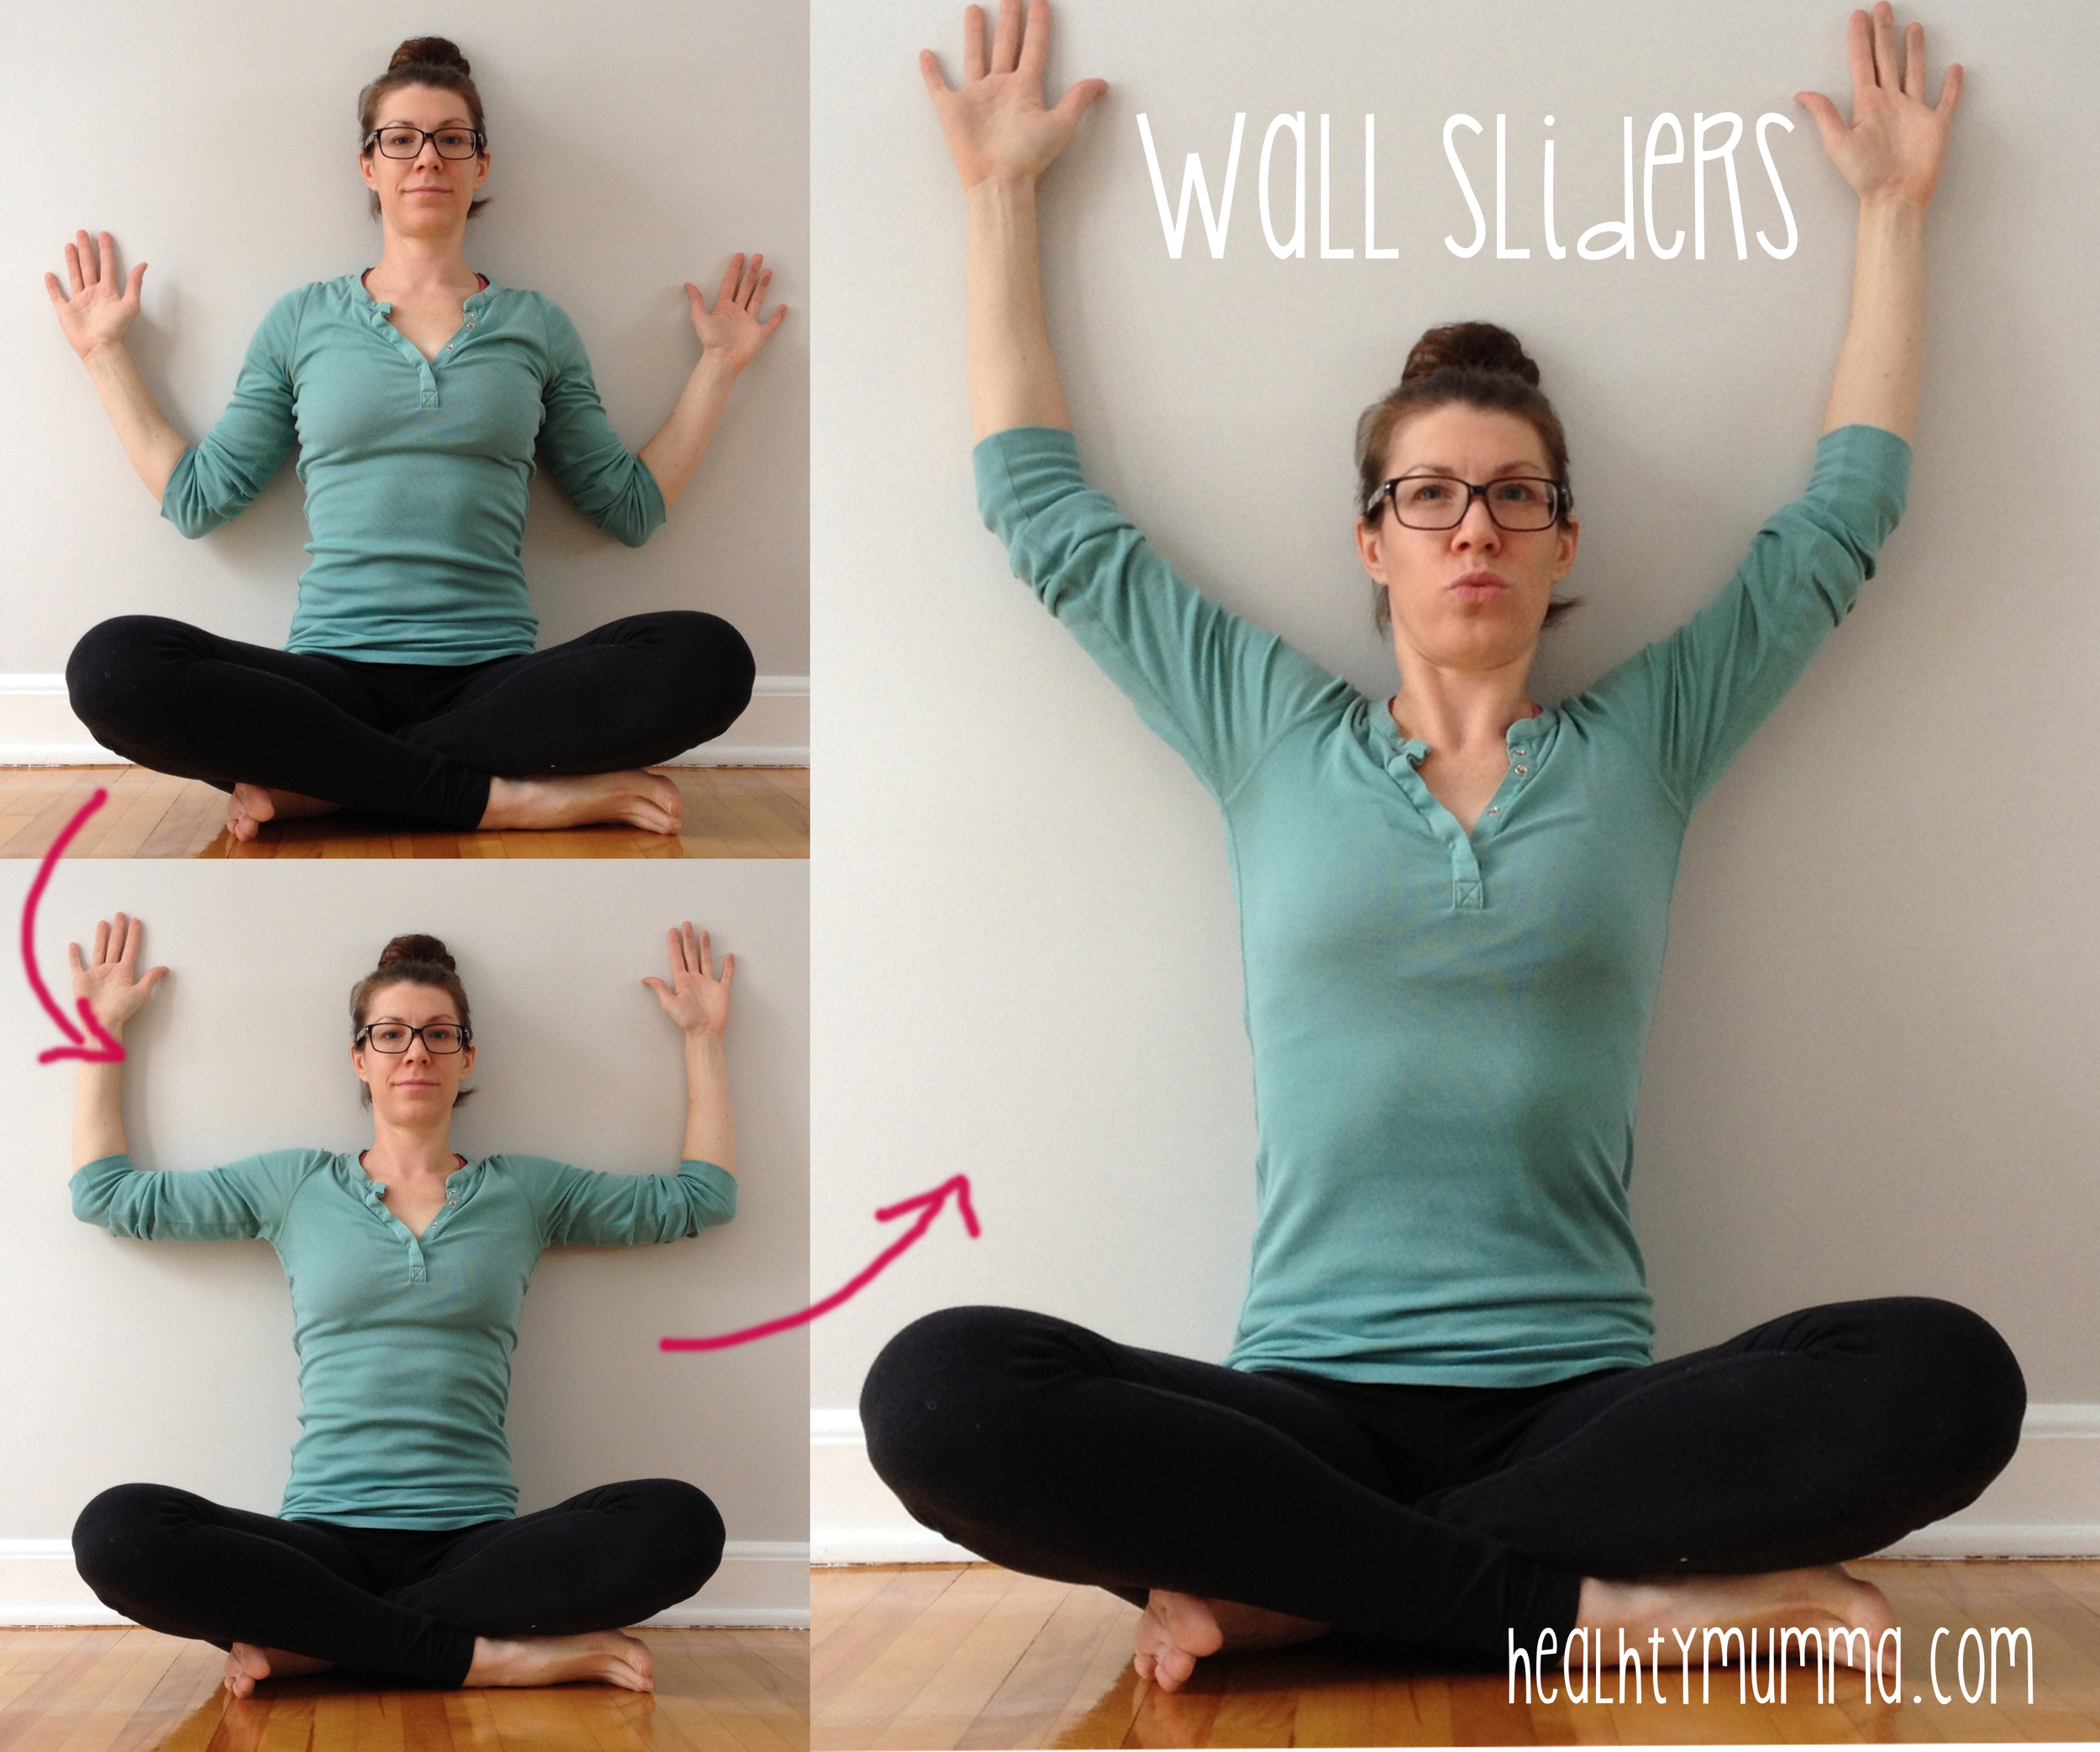 Wall sliders are a great exercise for mid-back ache from nursing.